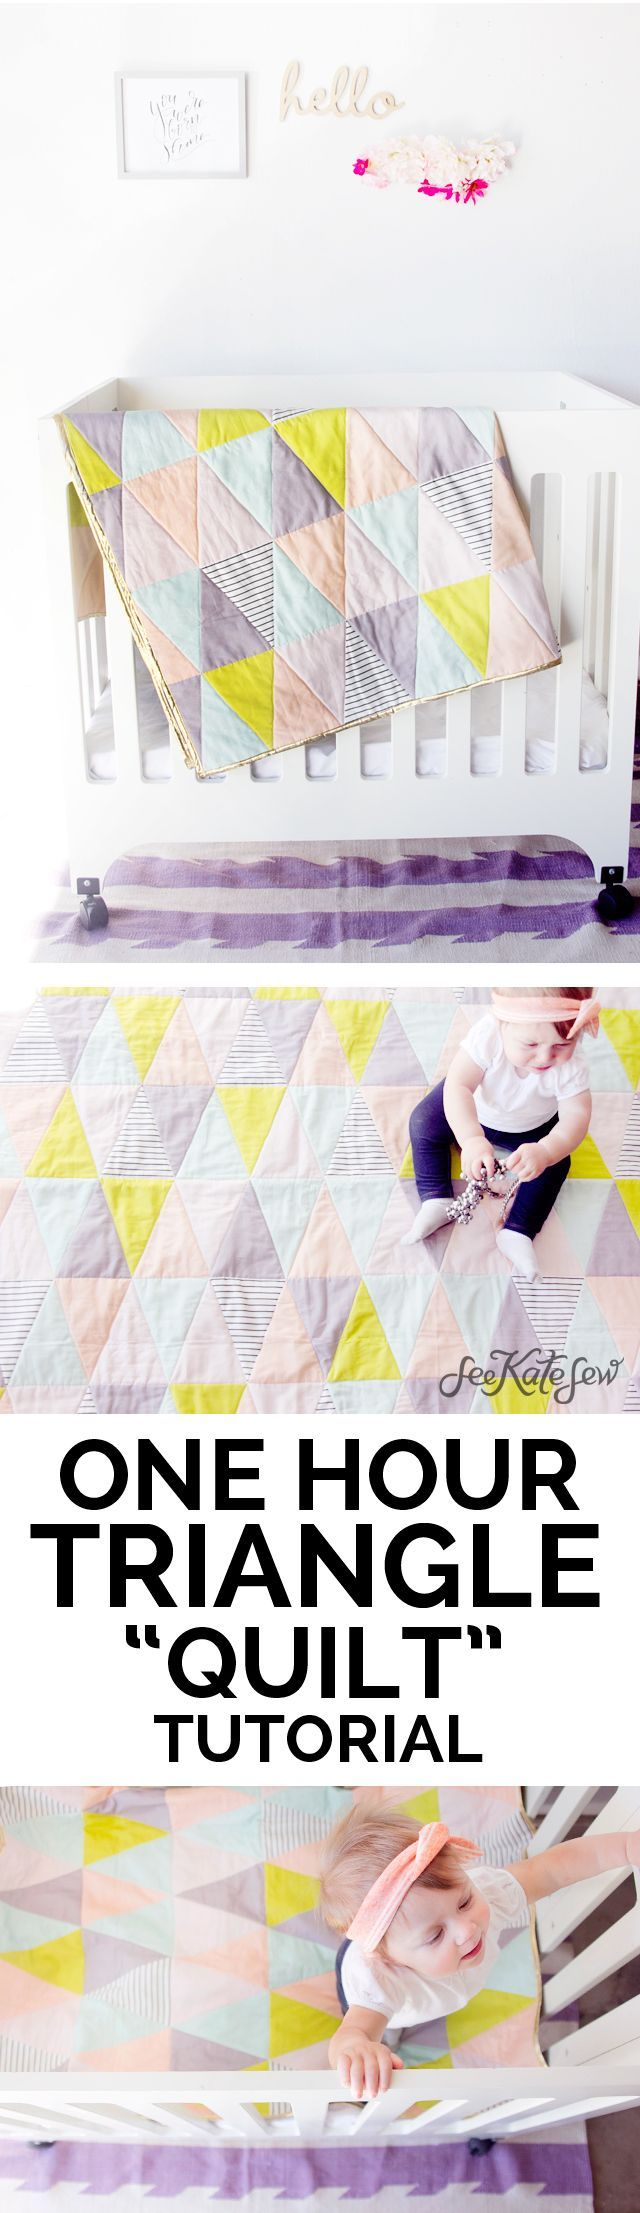 ONE HOUR triangle quilt tutorial   baby quilt tutorial   diy baby quilt   diy triangle quilt   quick sewing tutorial   sewing tips and tricks   easy sewing patterns   free sewing patterns    See Kate Sew #trianglequilt #sewingtips #sewingforbeginners